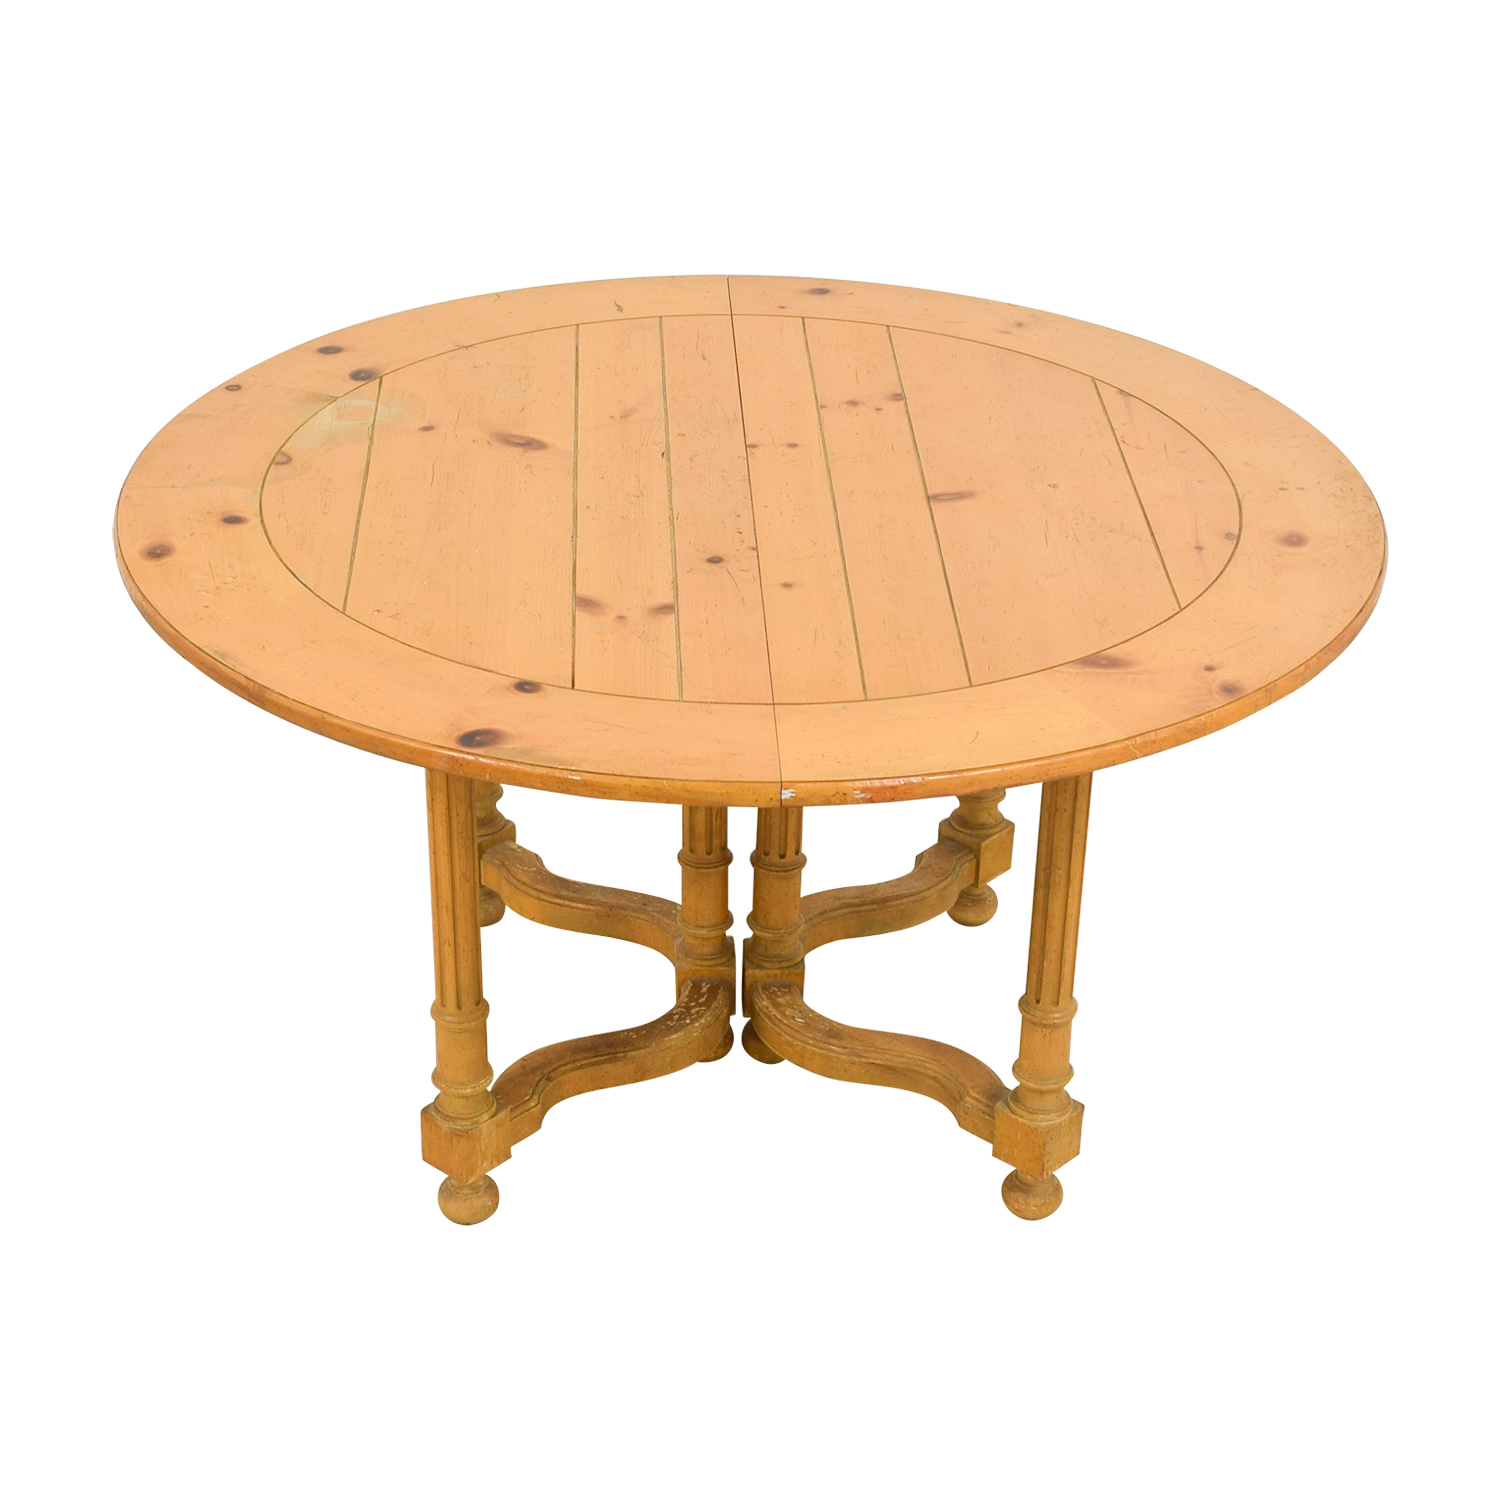 Milling Road Milling Road Natural Round Table with Leaf discount